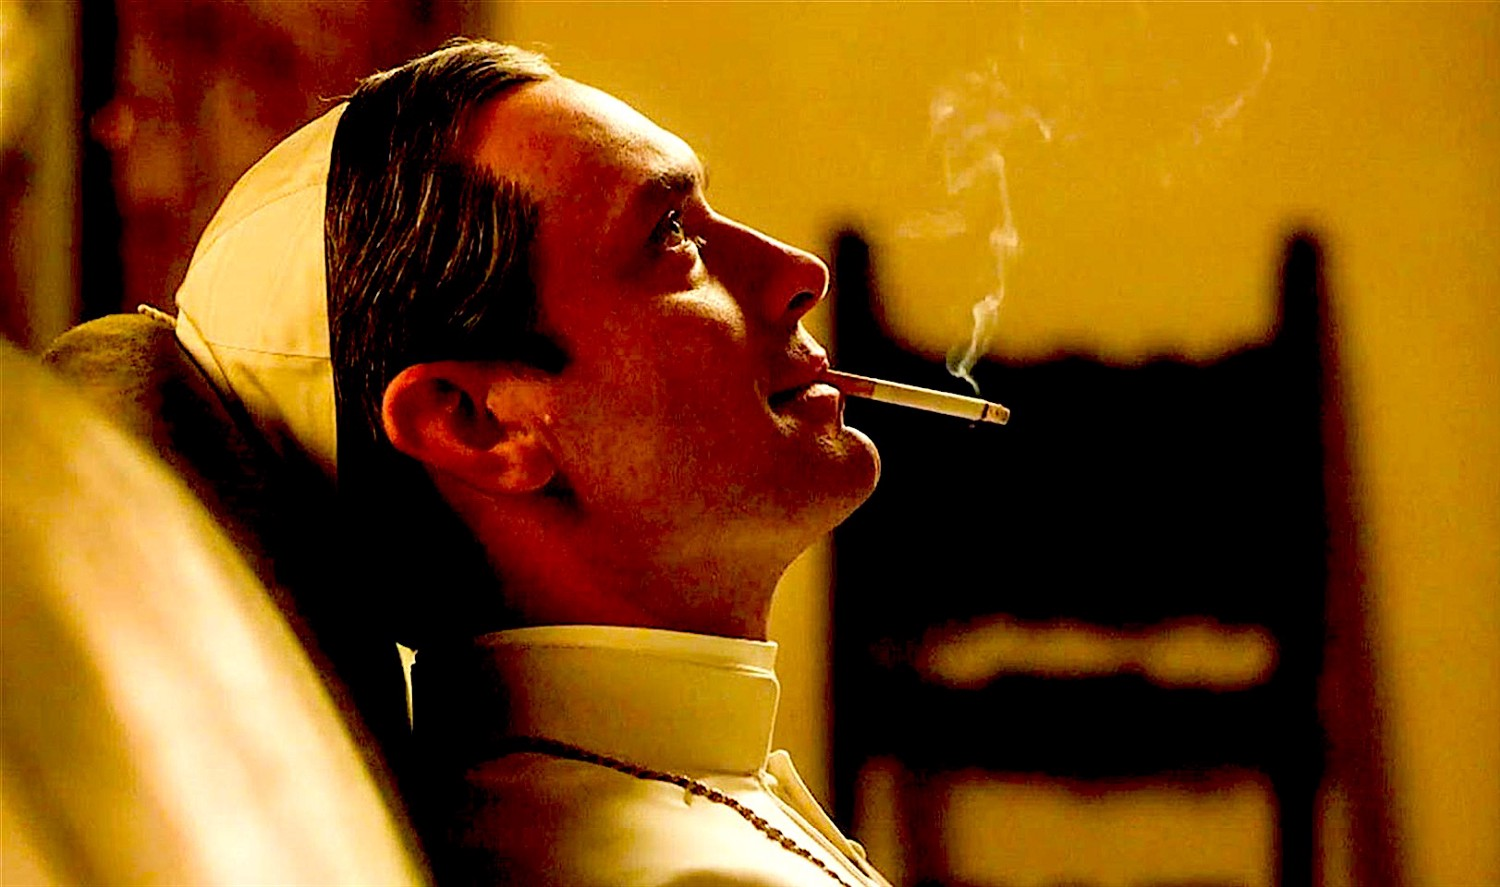 Image Credit: Young Pope